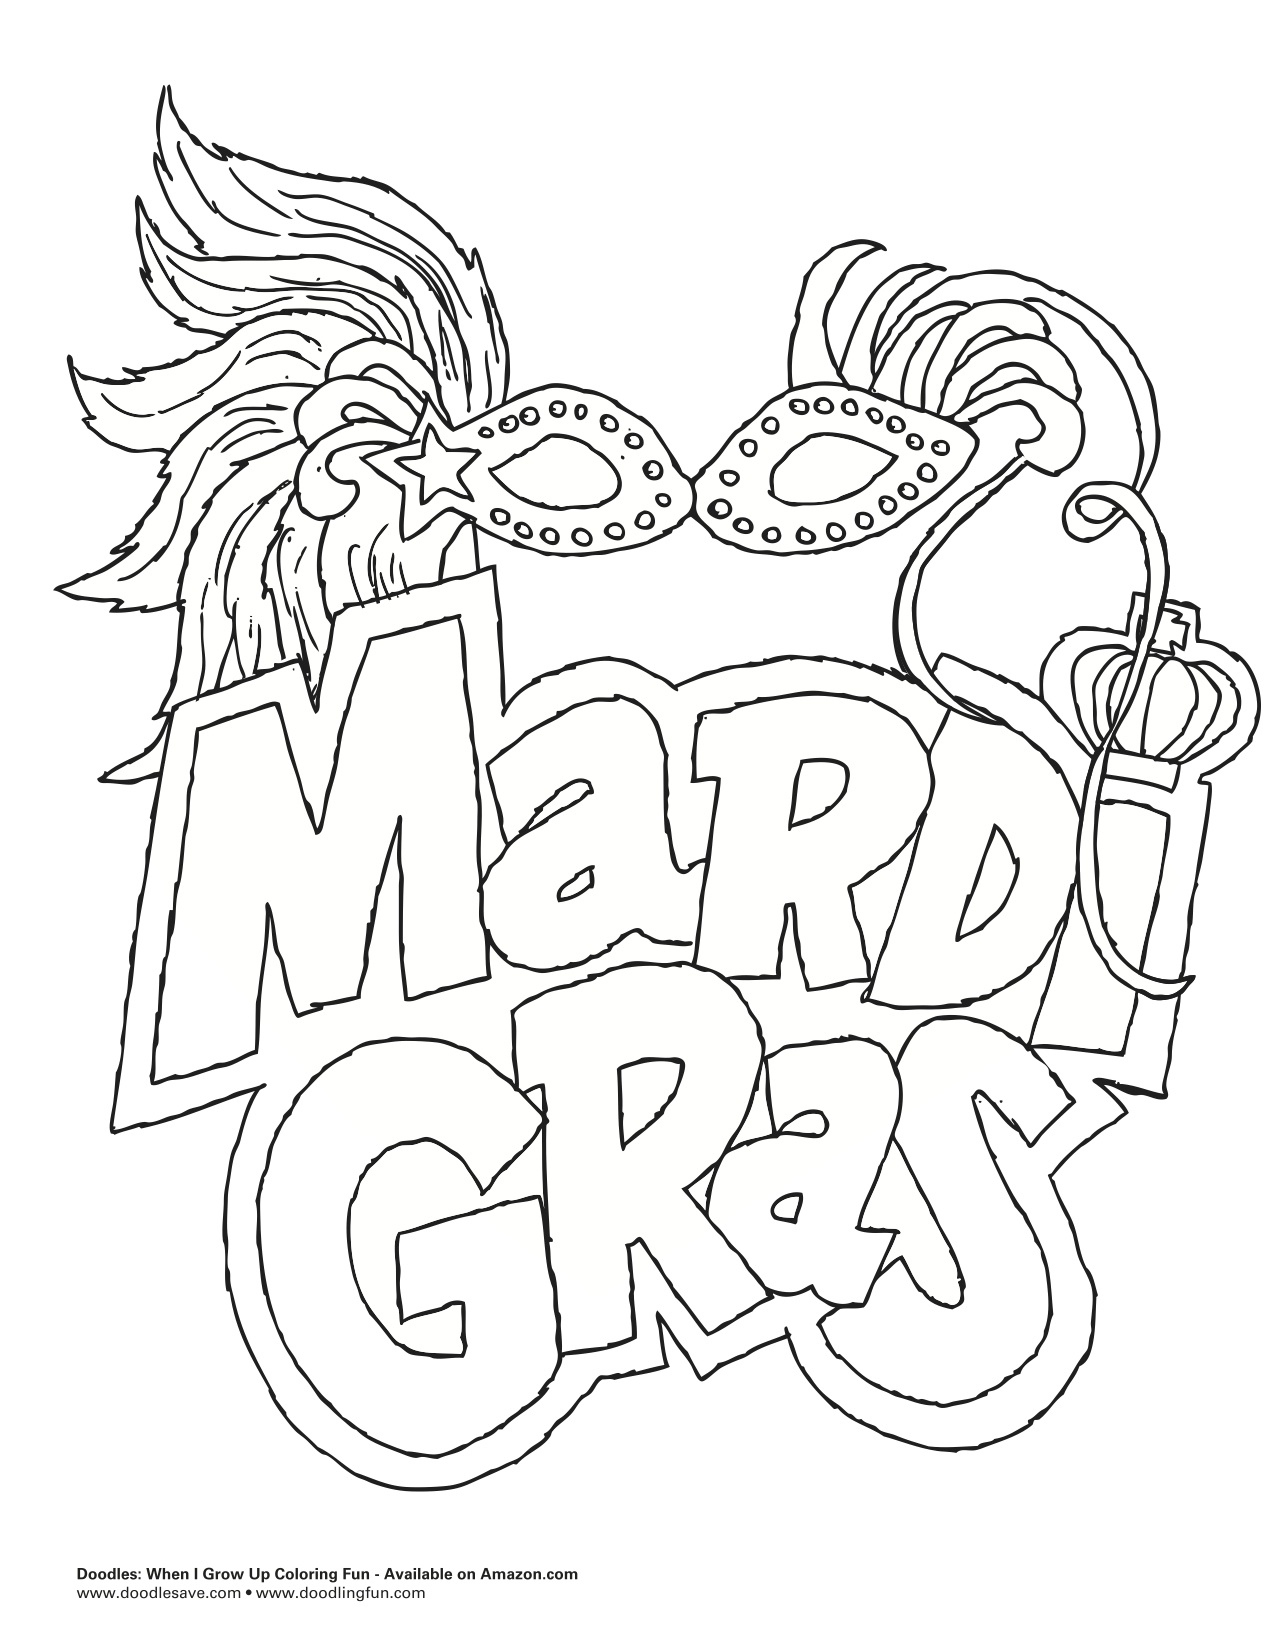 mardi gras mask coloring page - mardi gras masks coloring pages